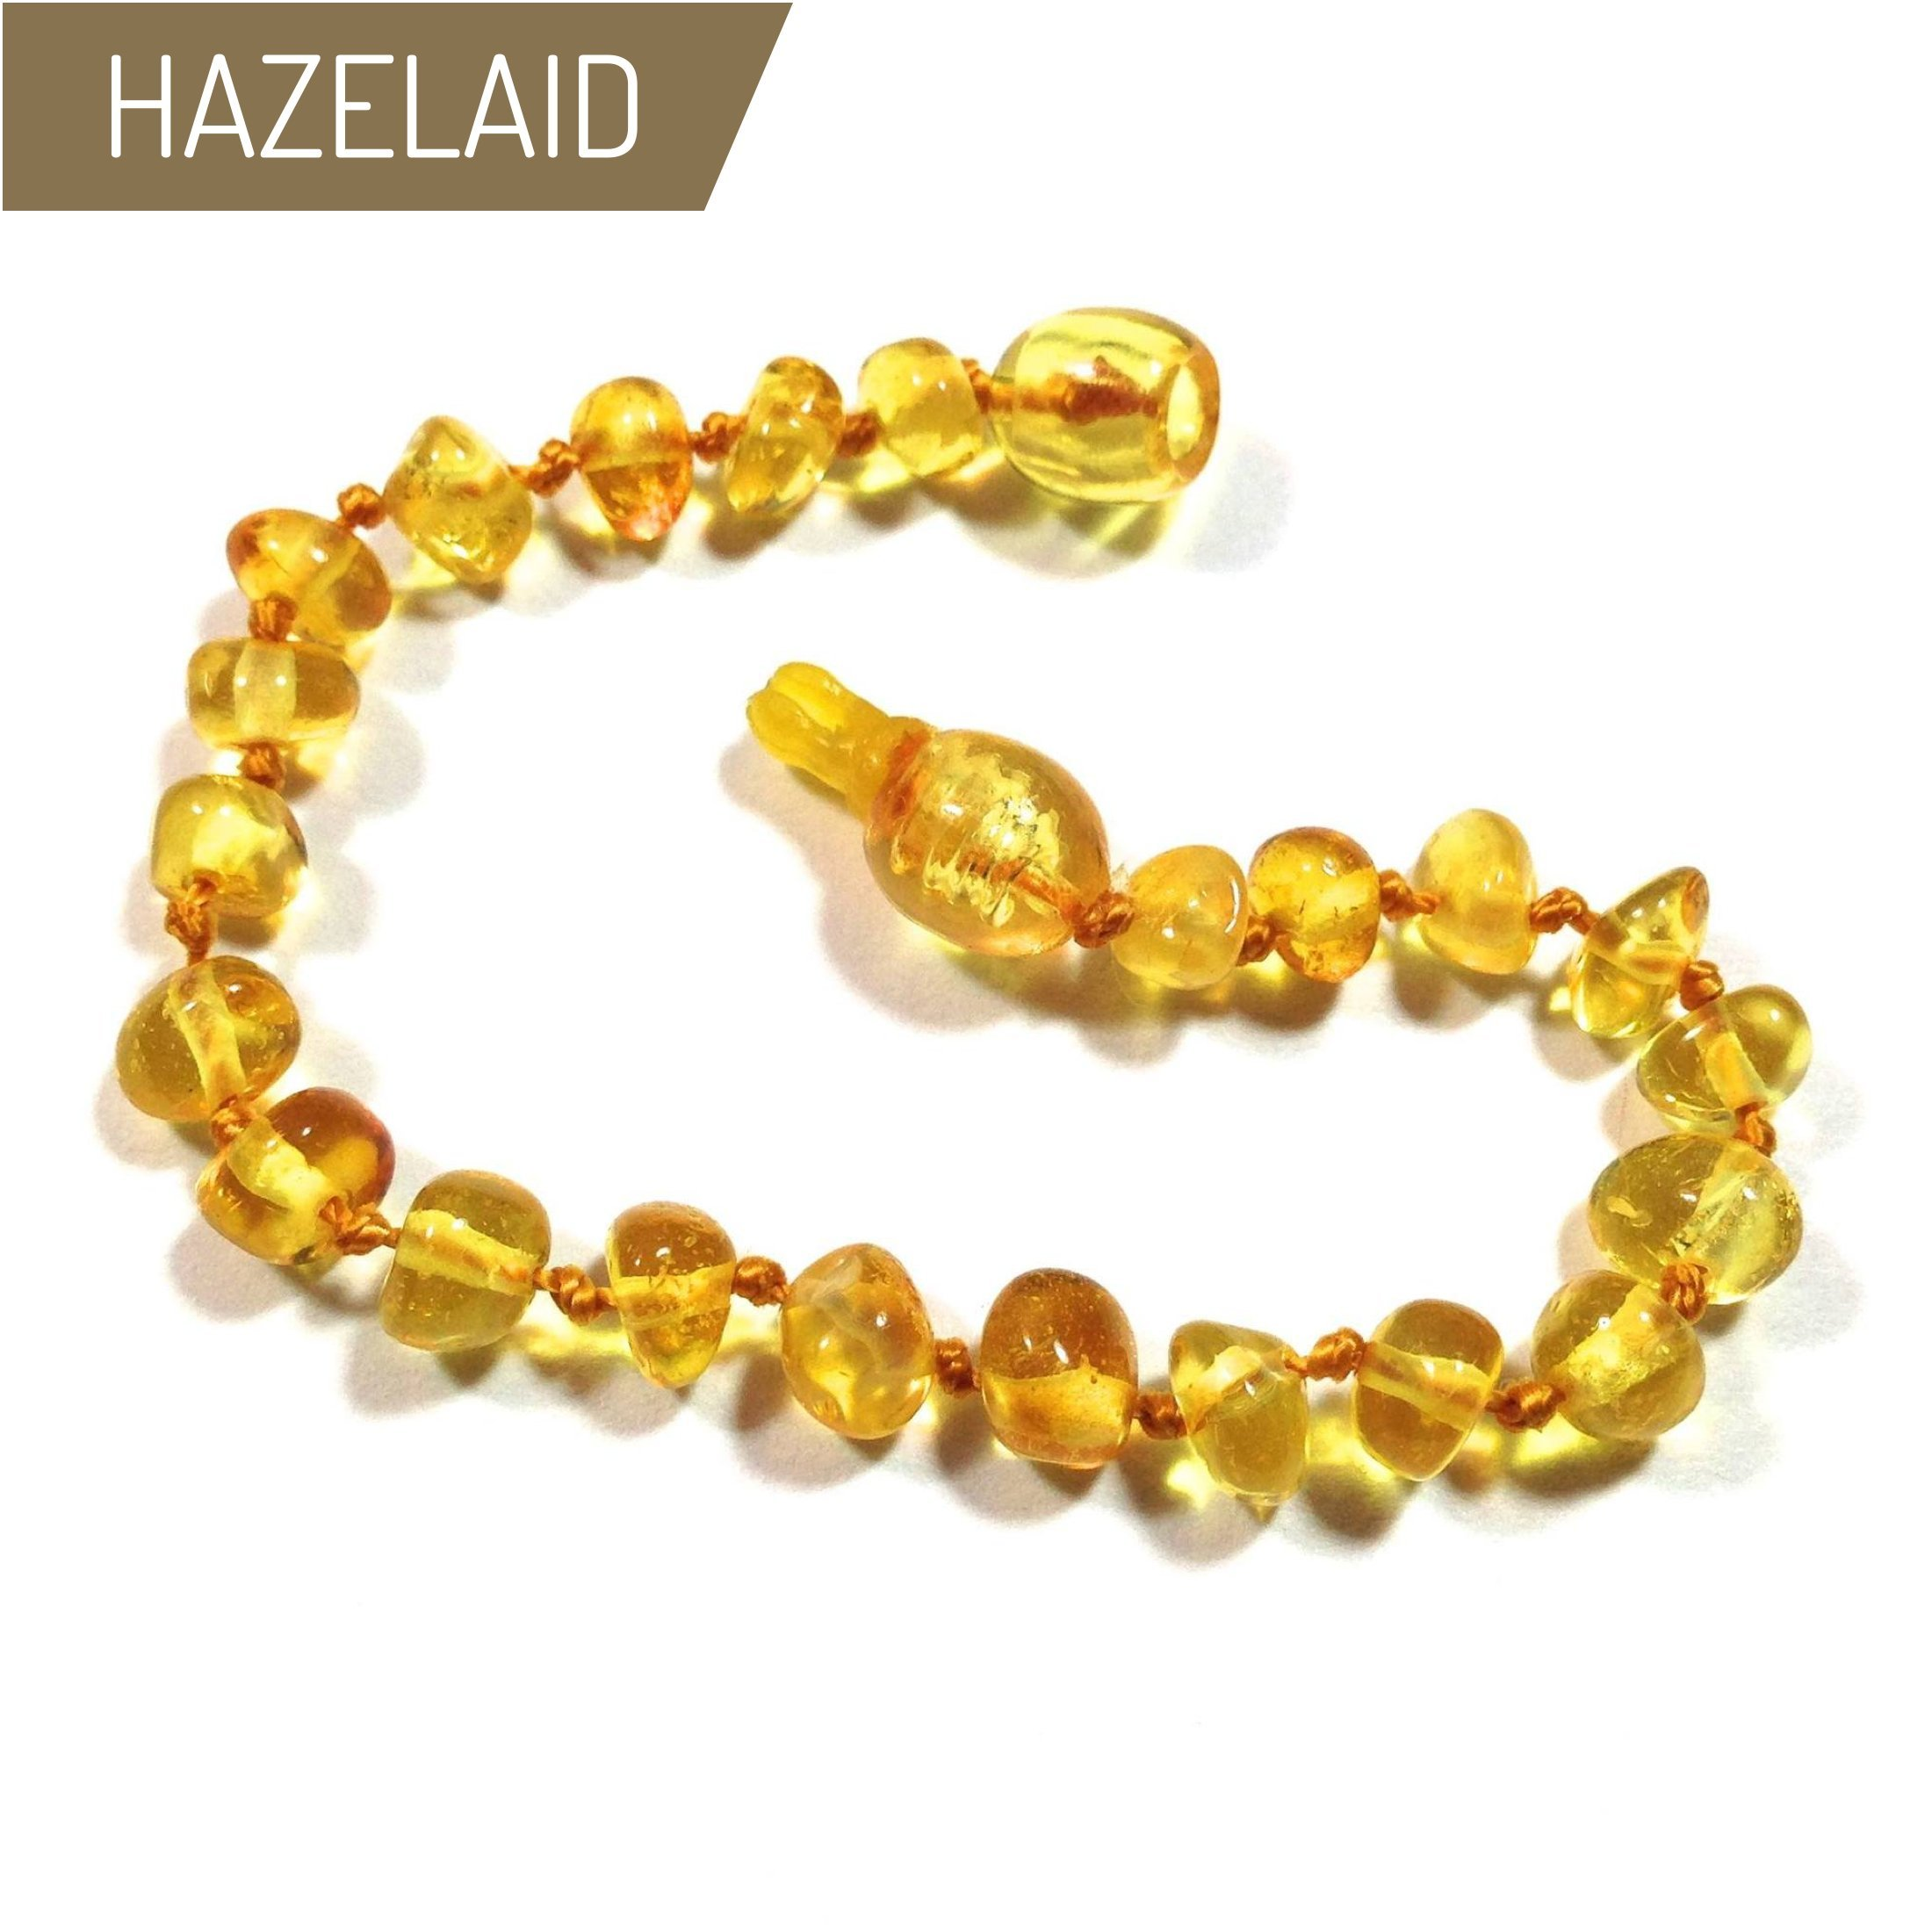 Hazelaid (TM) 5.5'' Pop-Clasp Baltic Amber Lemon Bracelet